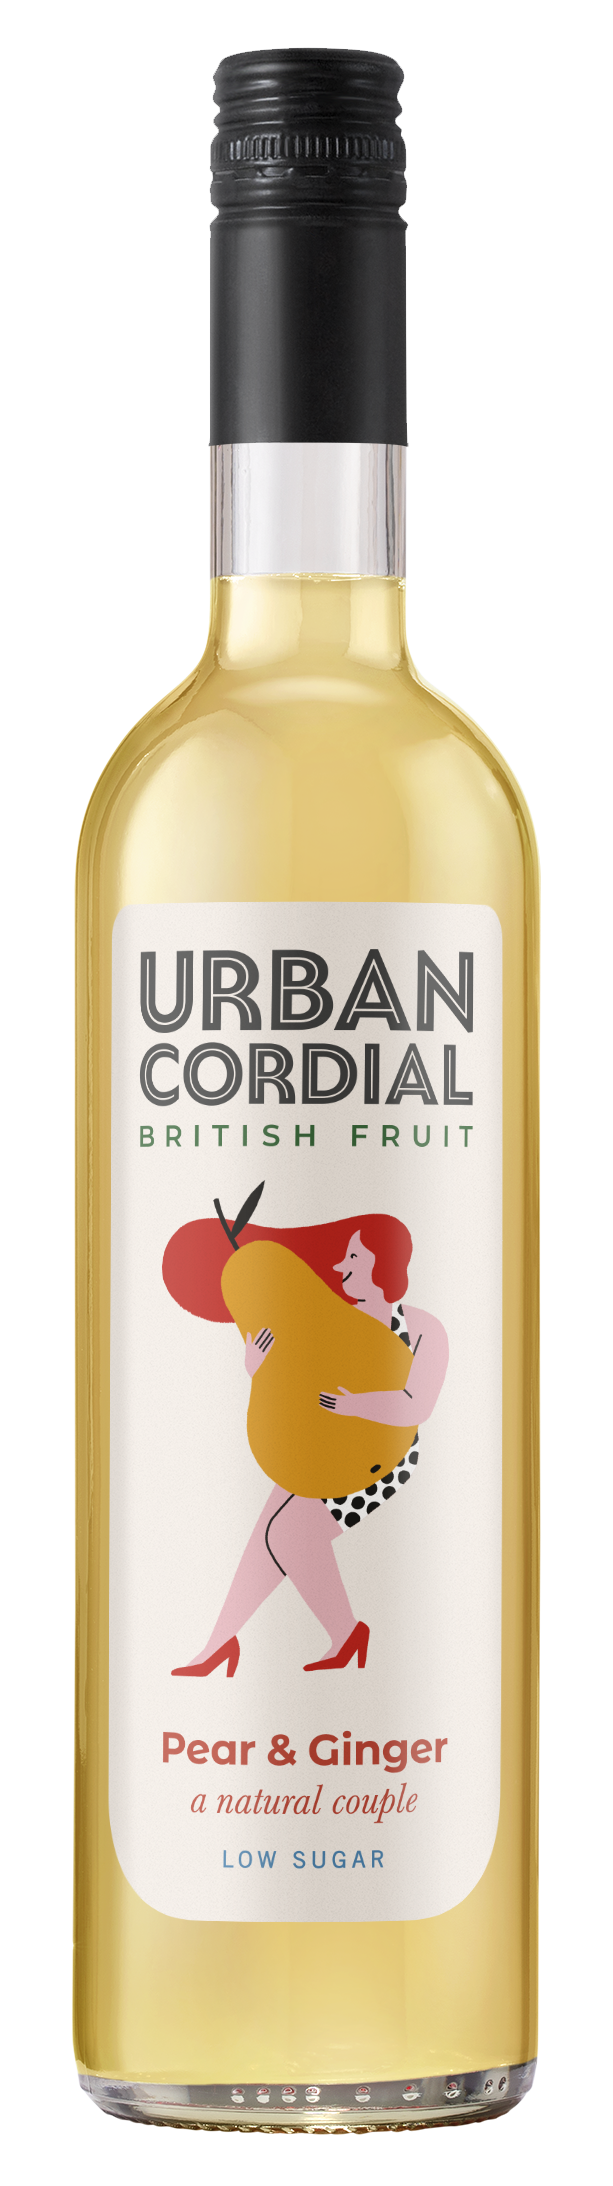 Pear & Ginger Cordial by Urban Cordials 500ml